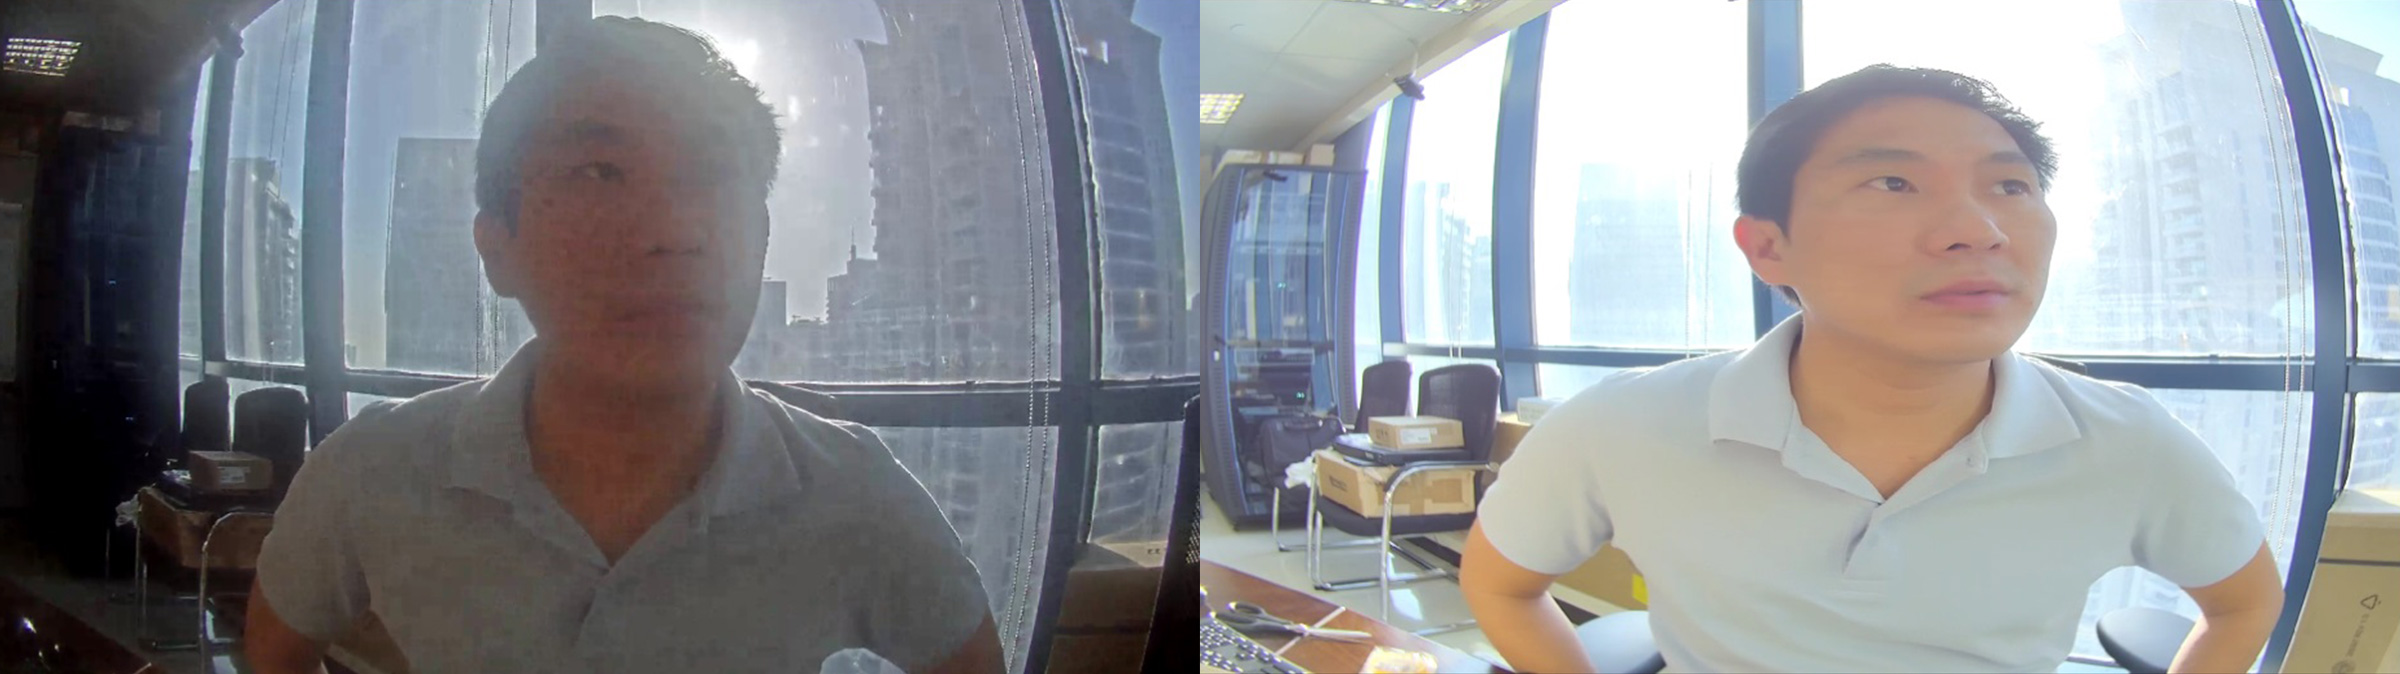 A surveillance image from a competitor's ATM camera compared to March Networks MegaPX ATM Camera.